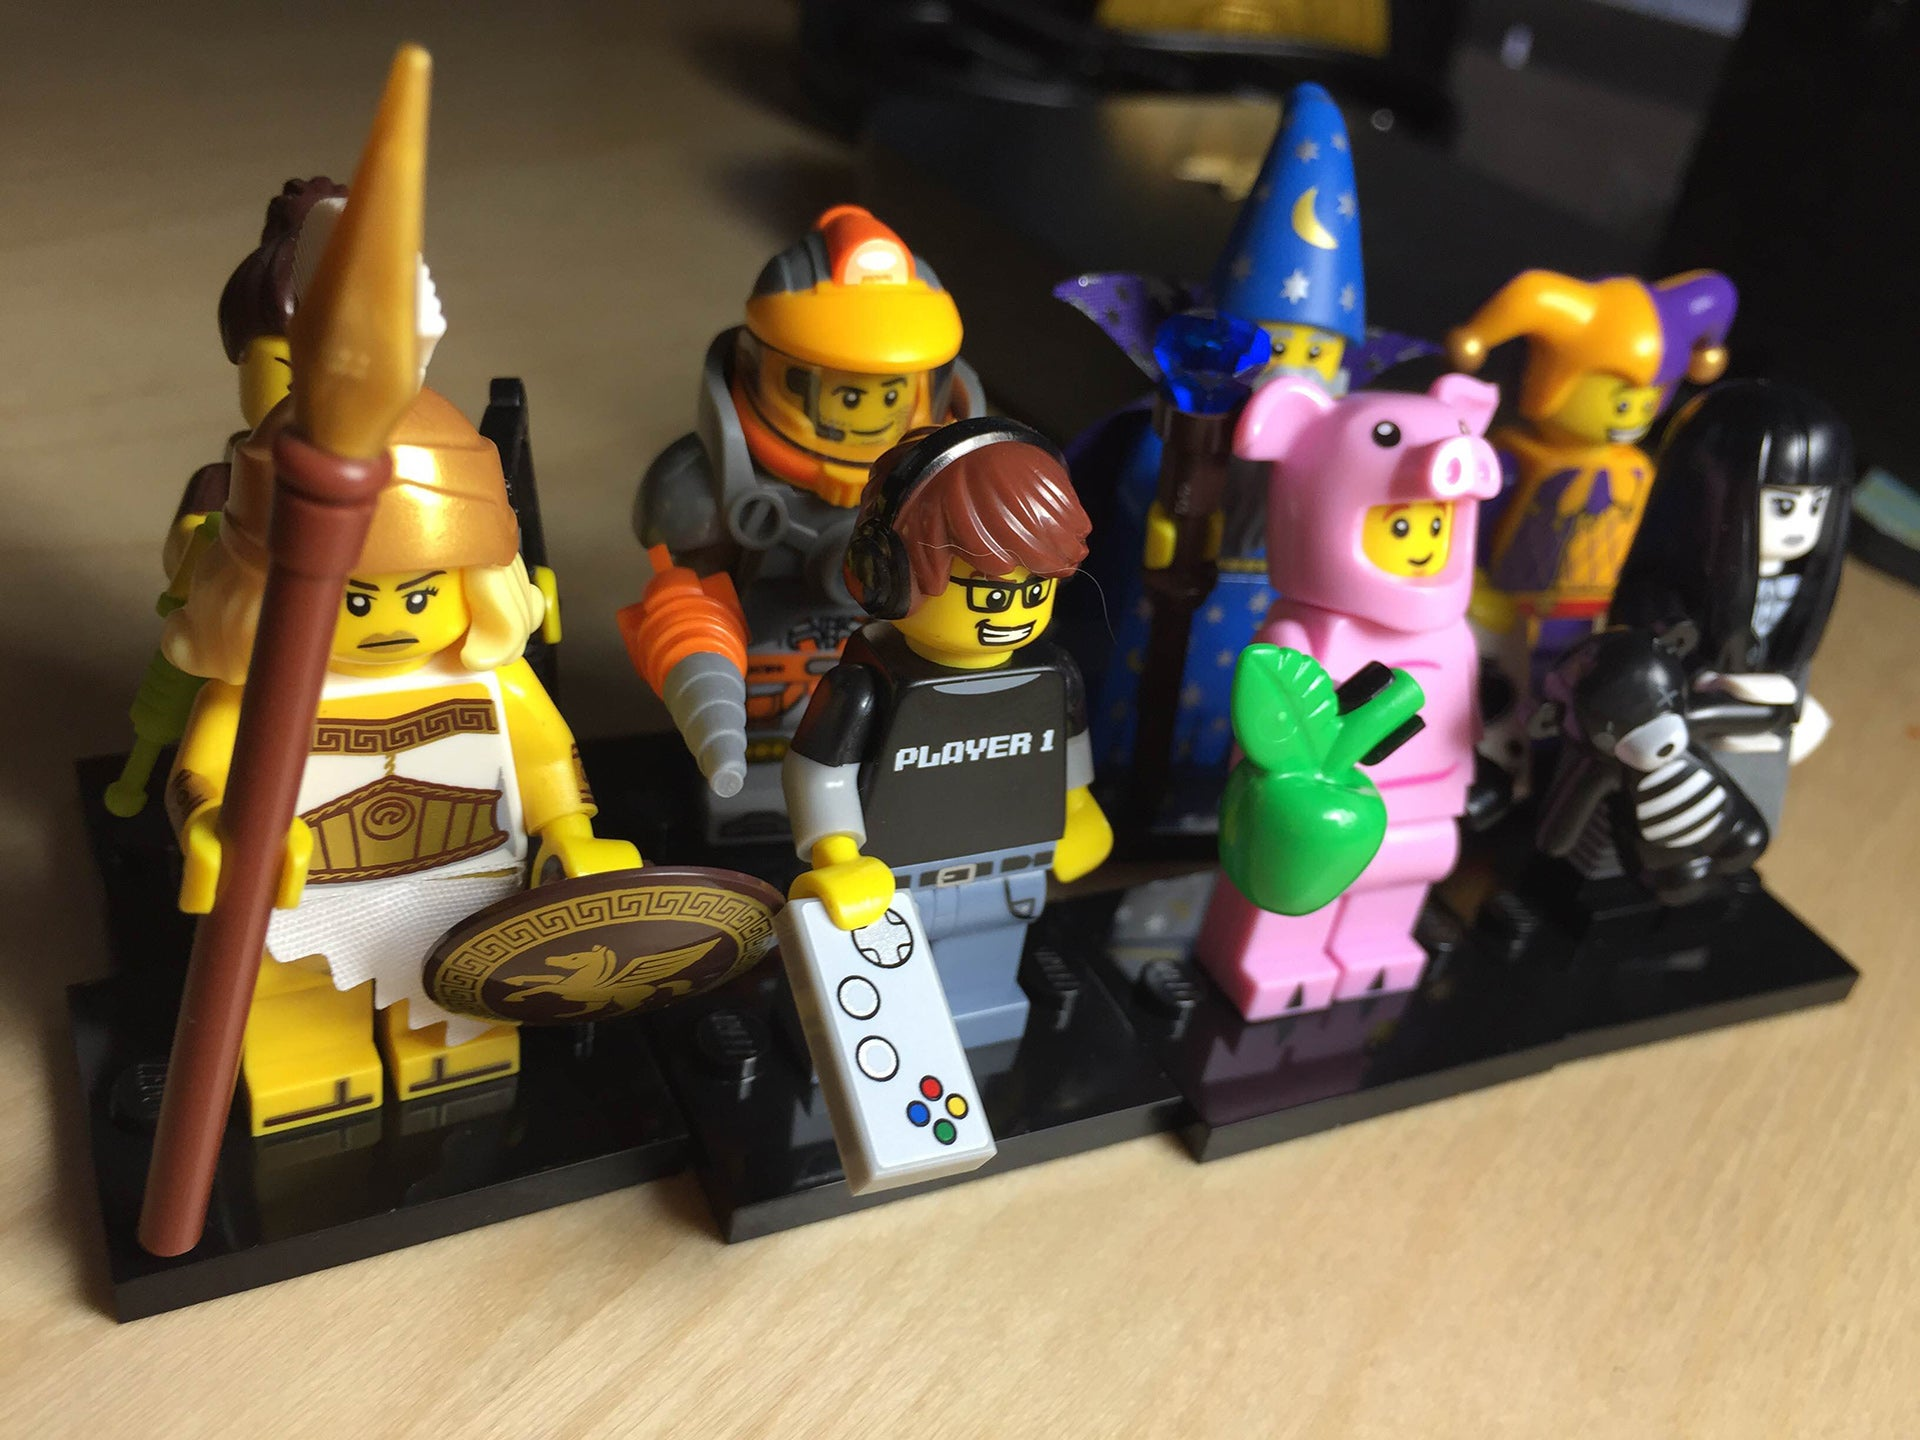 The Latest LEGO Minifigures Are Video Game Characters Too